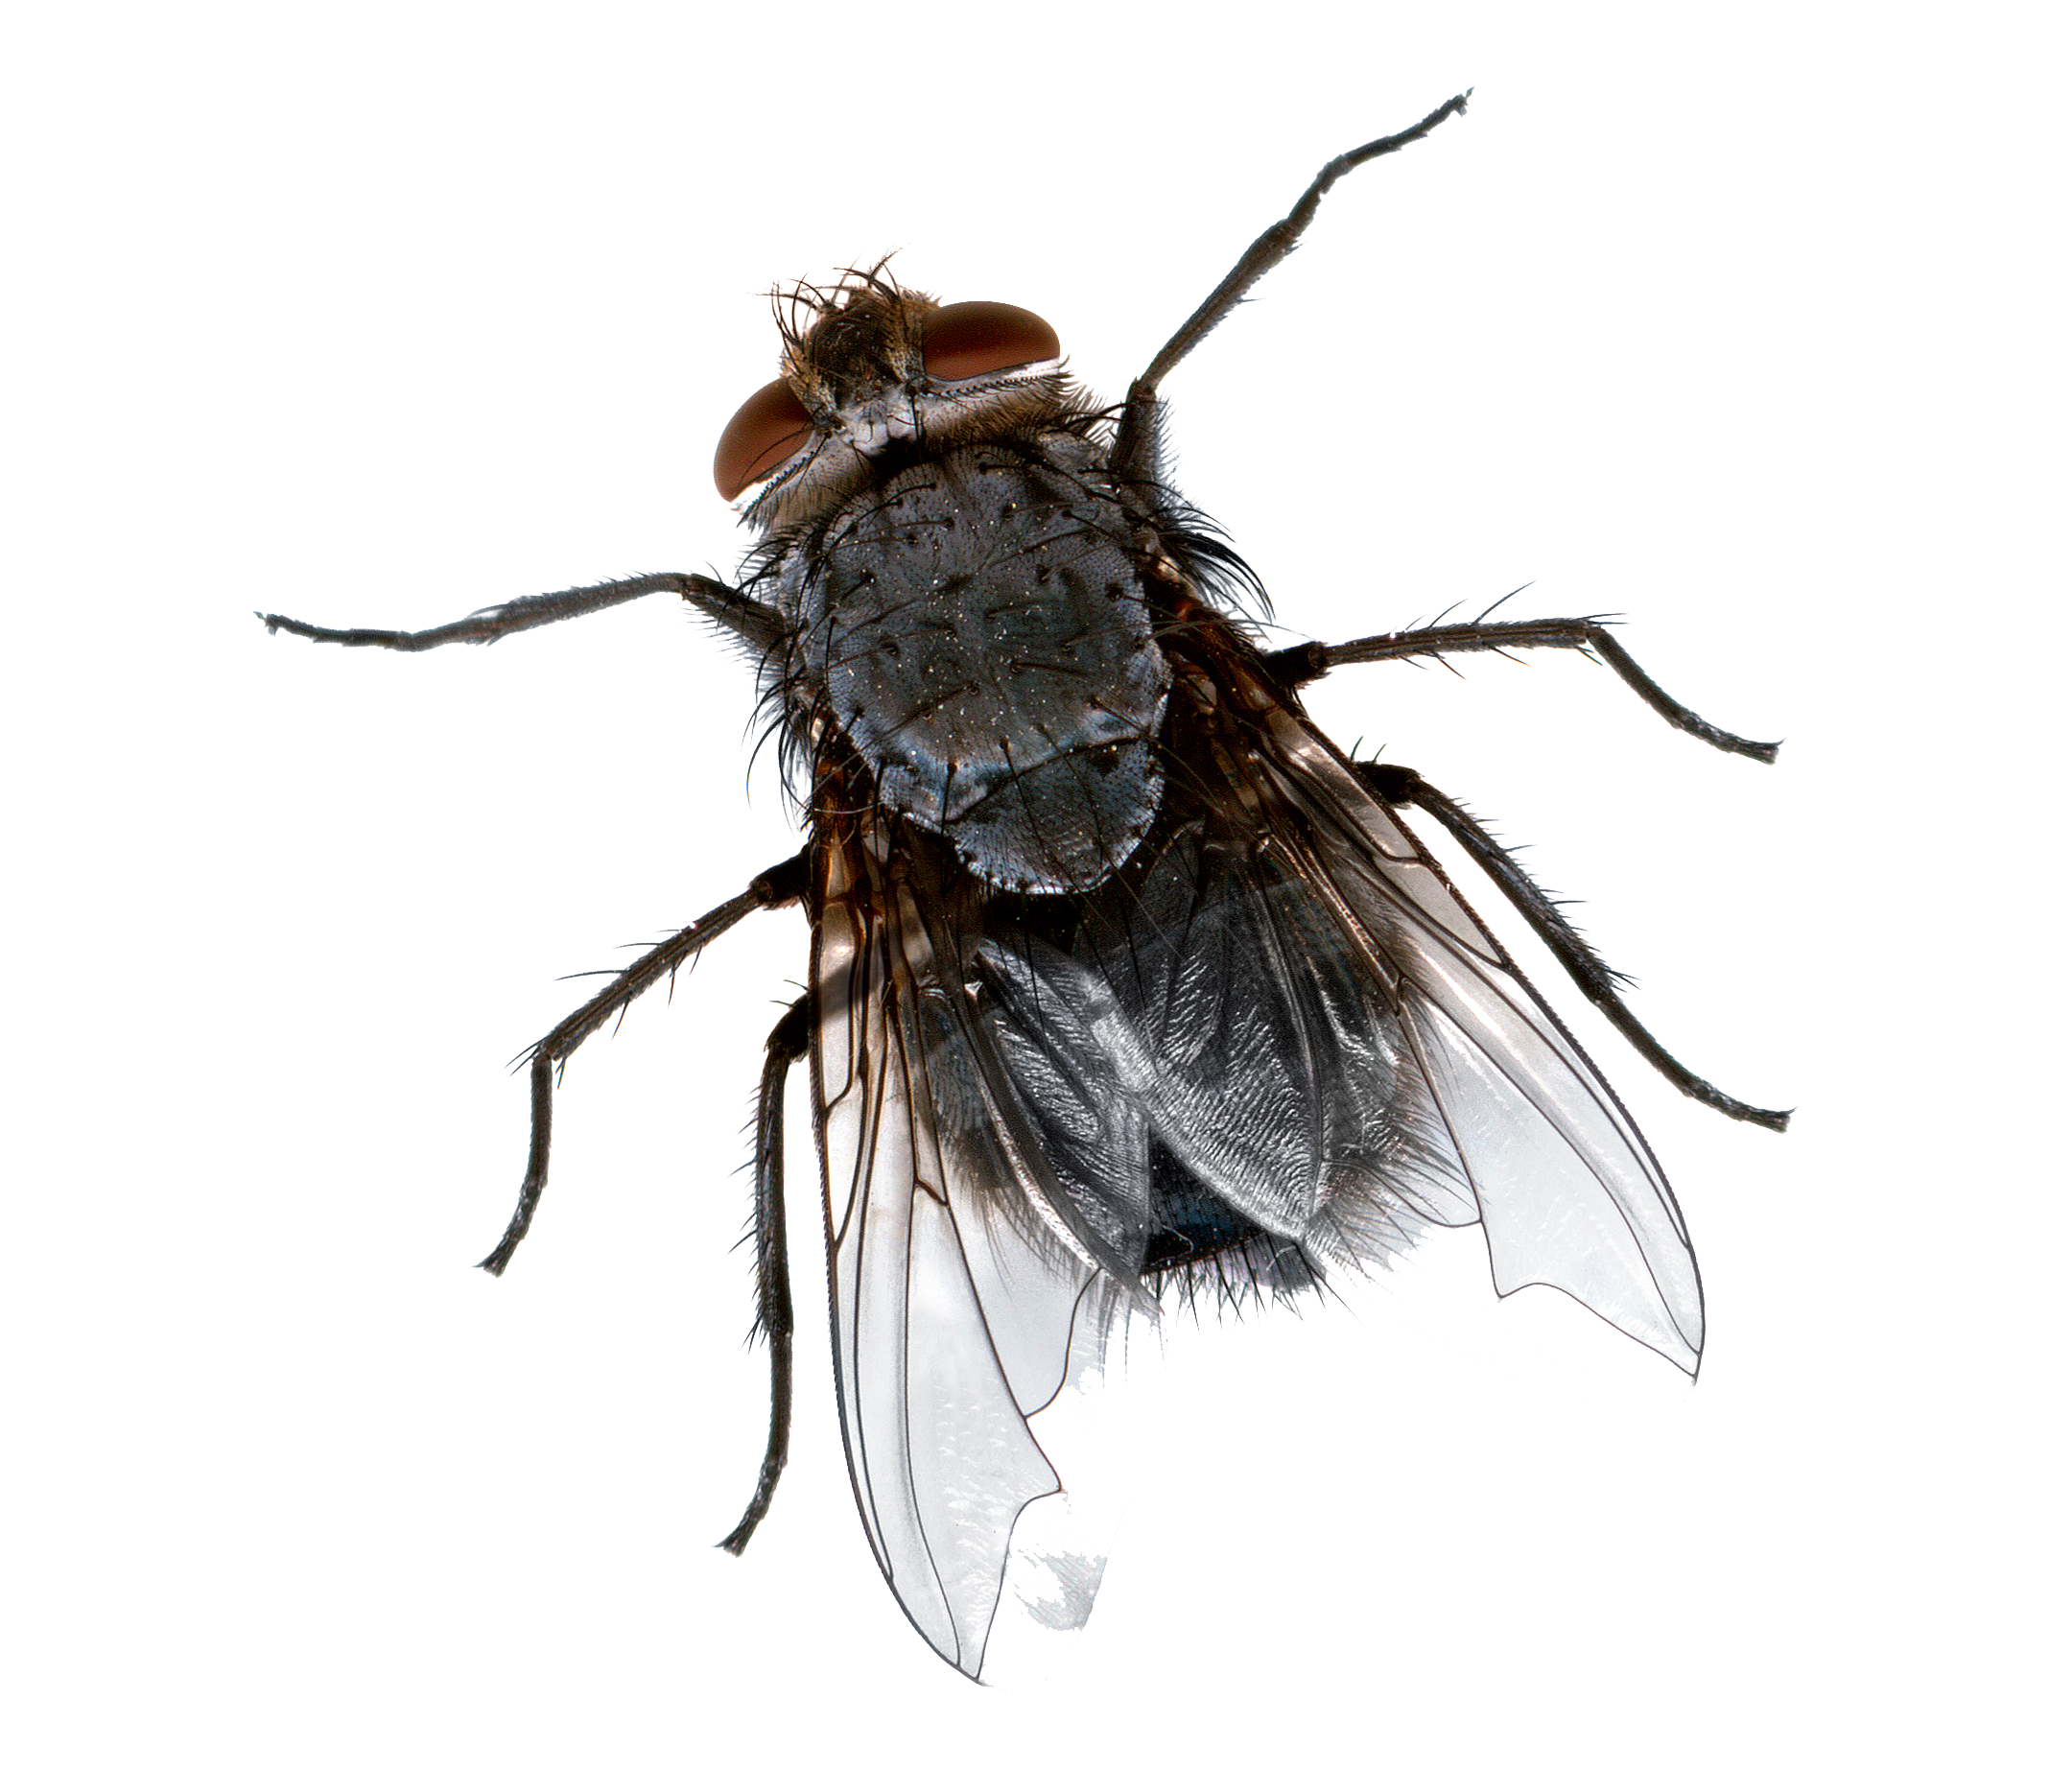 Flies PNG Images Transparent Free Download.